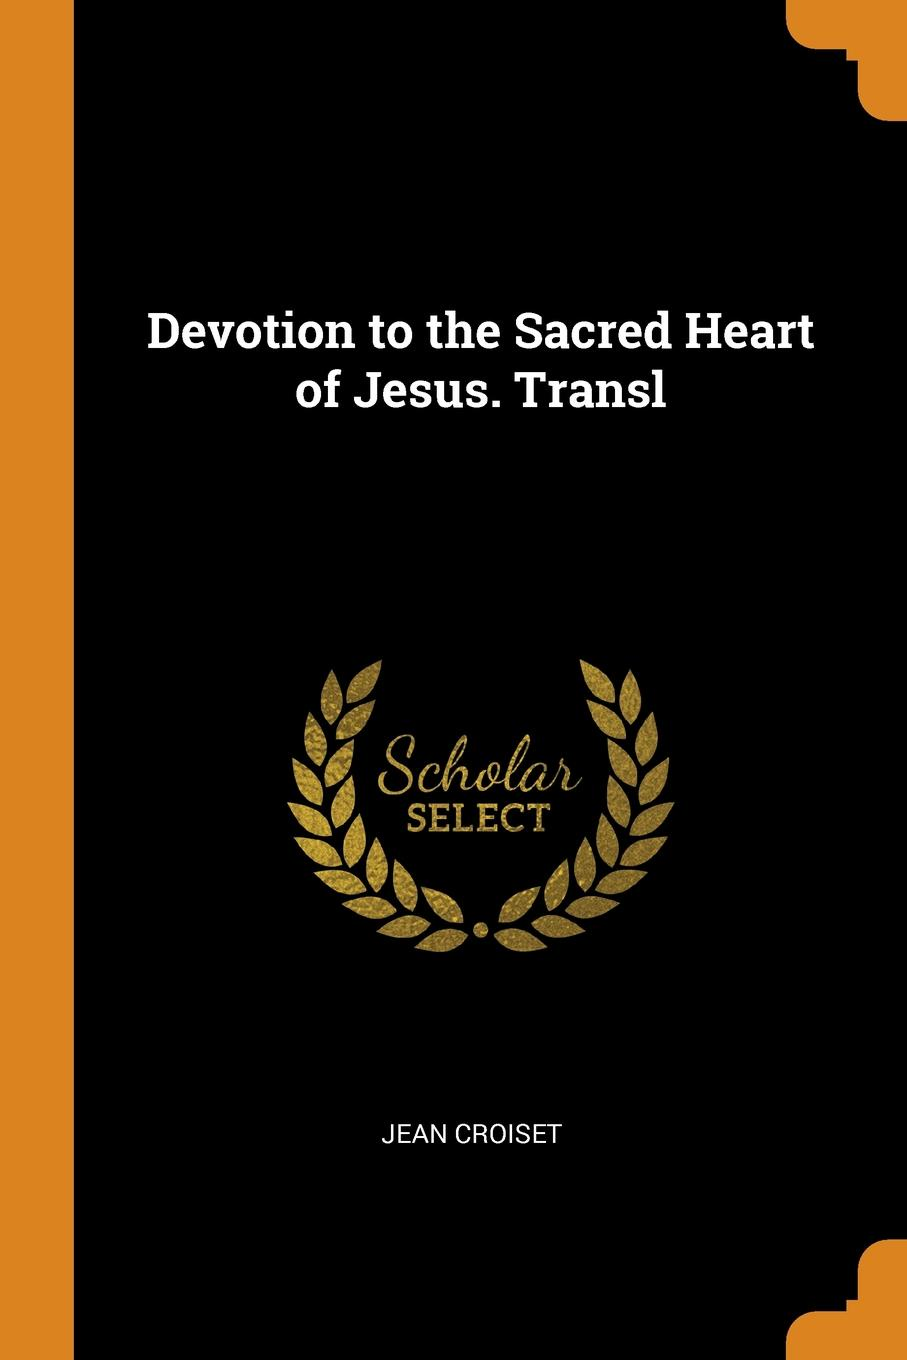 Jean Croiset Devotion to the Sacred Heart of Jesus. Transl john croiset patrick o connell devotion to the sacred heart of jesus how to practice the sacred heart devotion